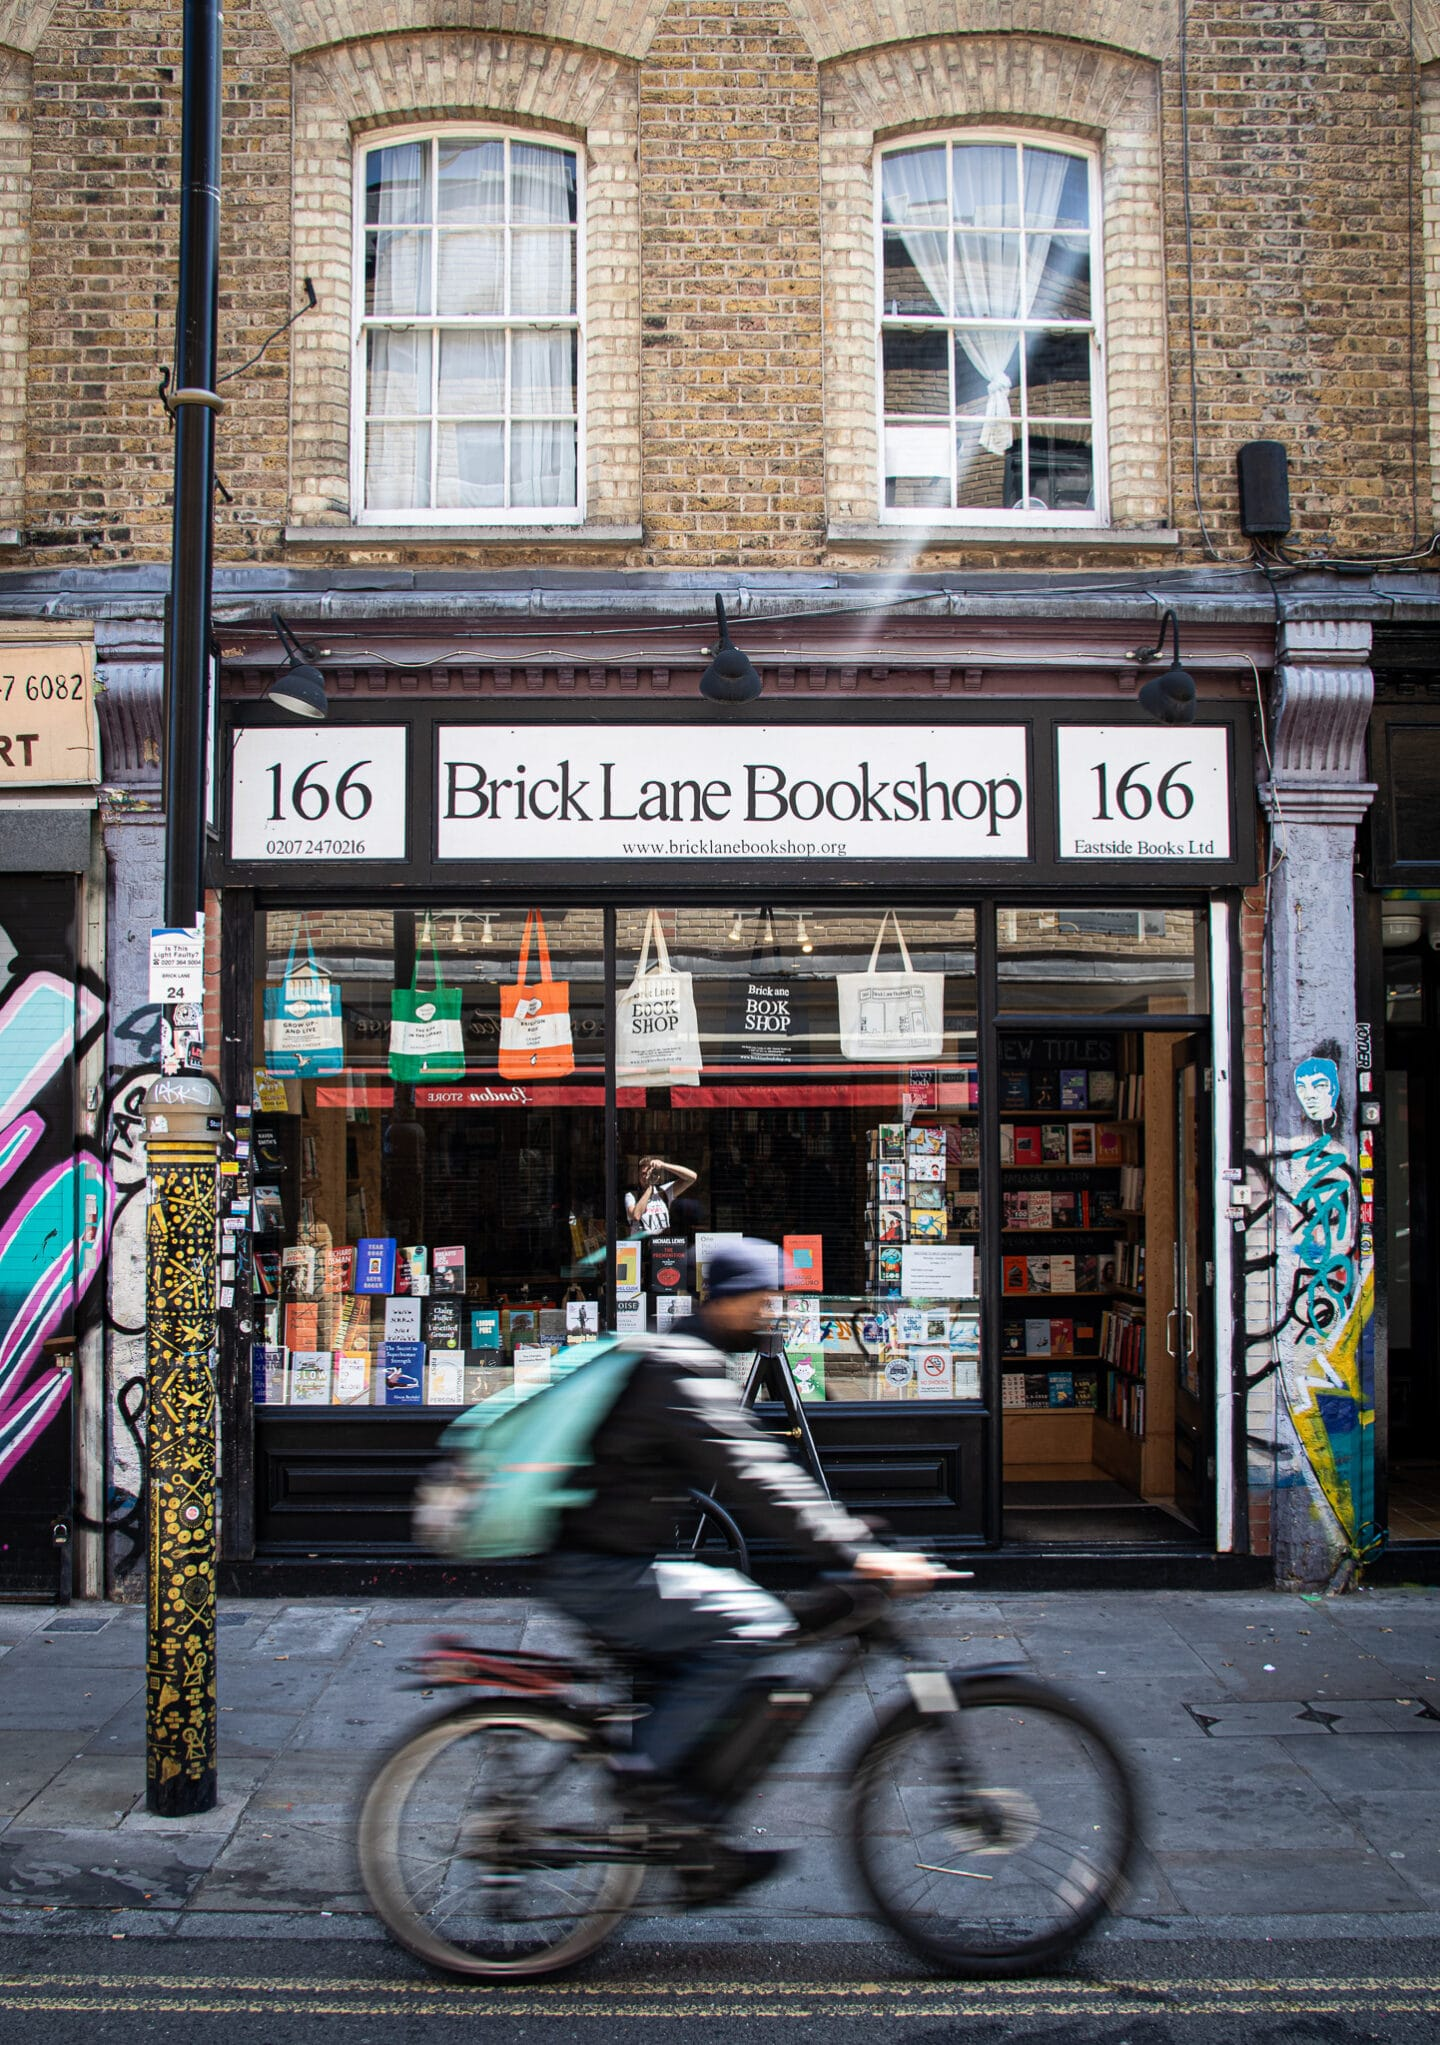 A cyclist cycles past the Brick Lane Bookshop which is at 166 Bricklane. The shops around Brick Lane are among my top recommendations of things to do in Shoreditch.